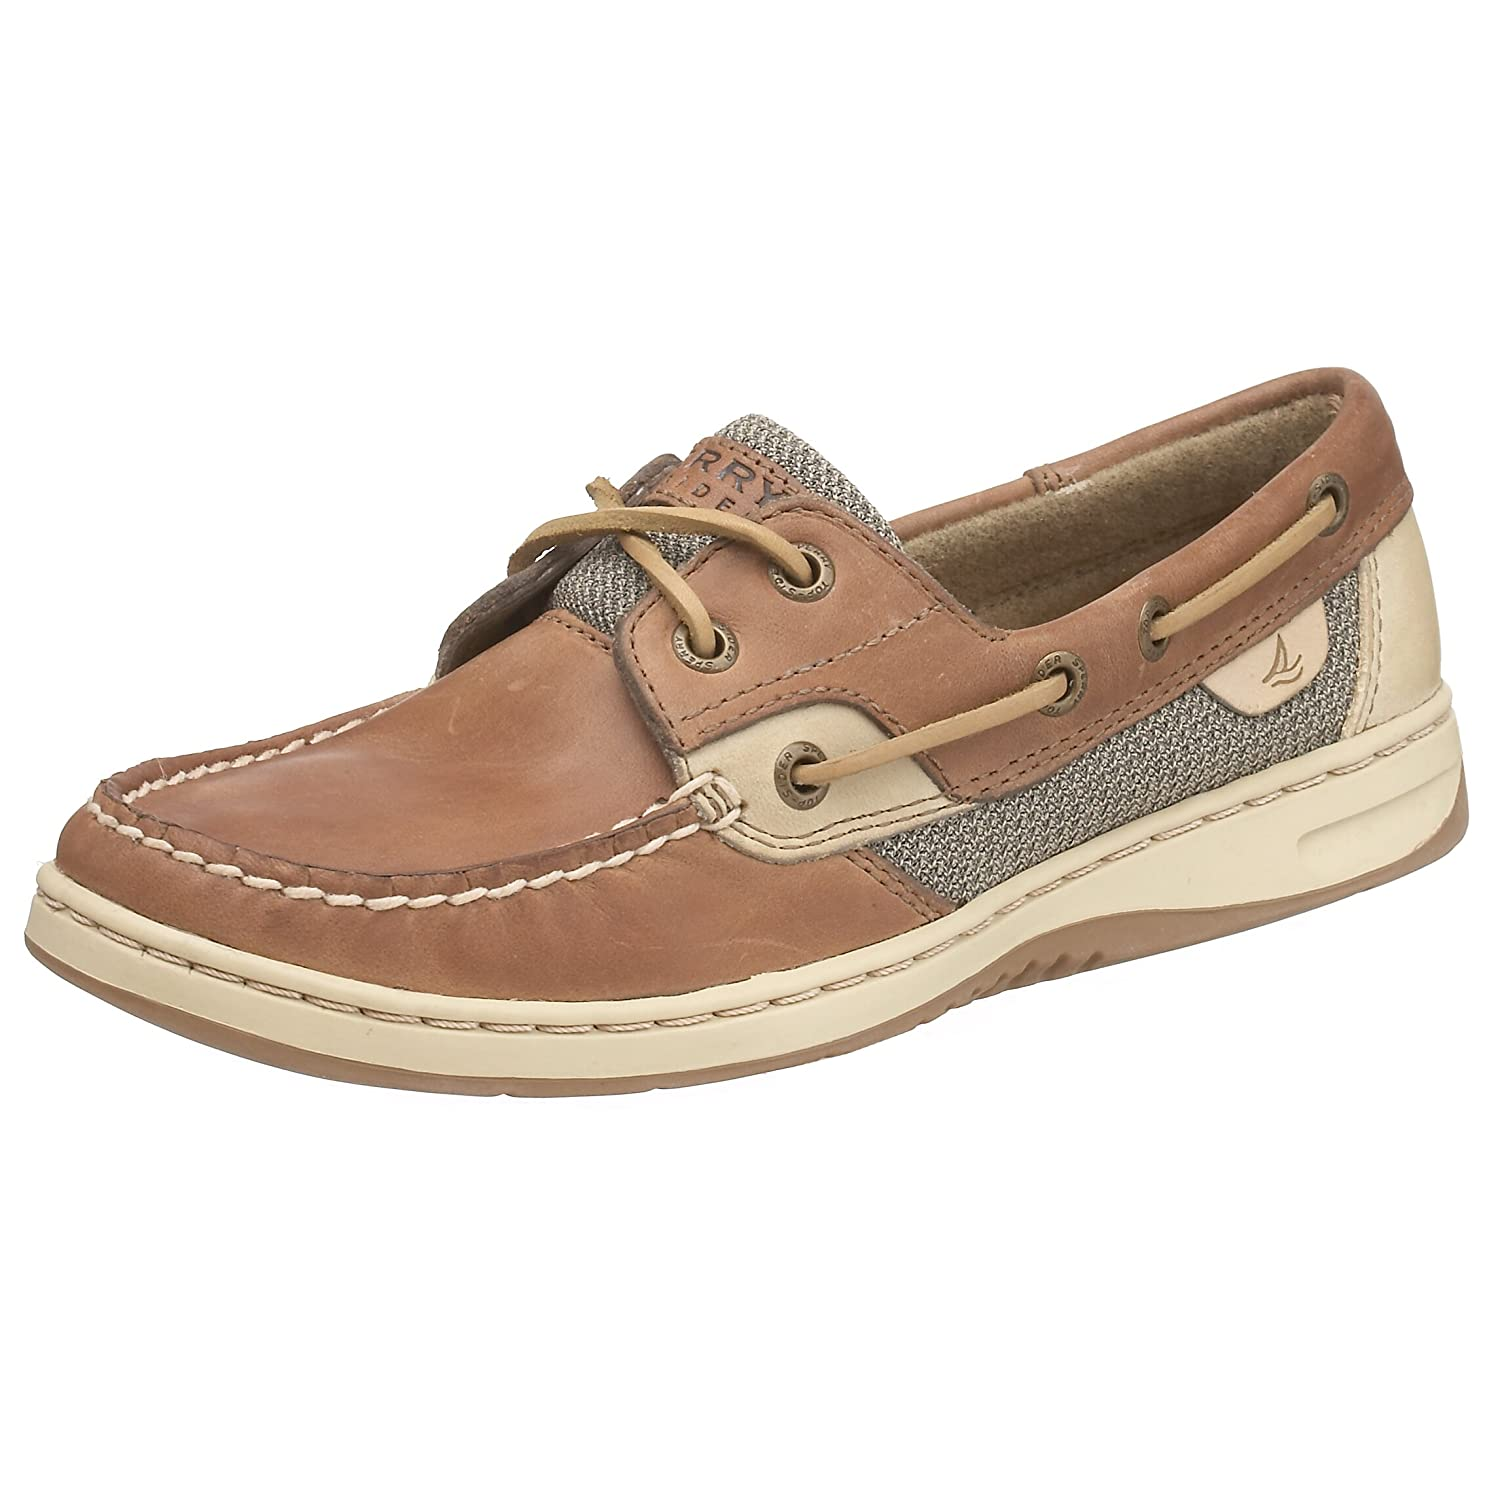 9ff0d815f17 Sperry Women's Bluefish Boat Shoe